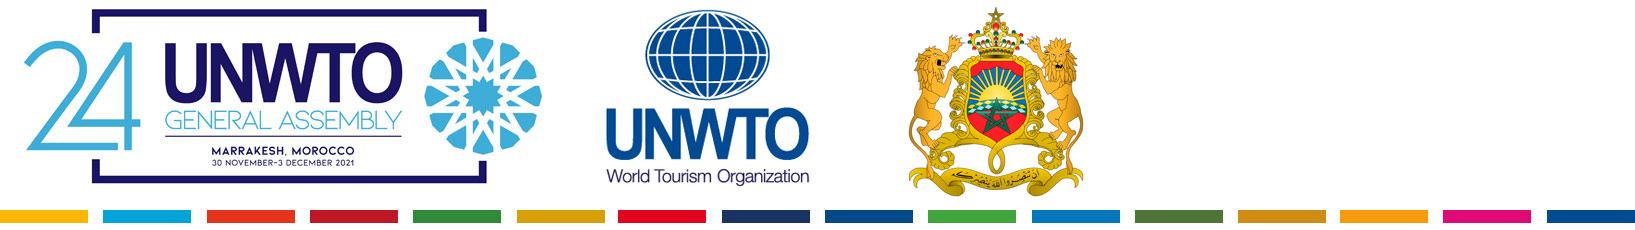 UNWTO General Assembly - Morocco